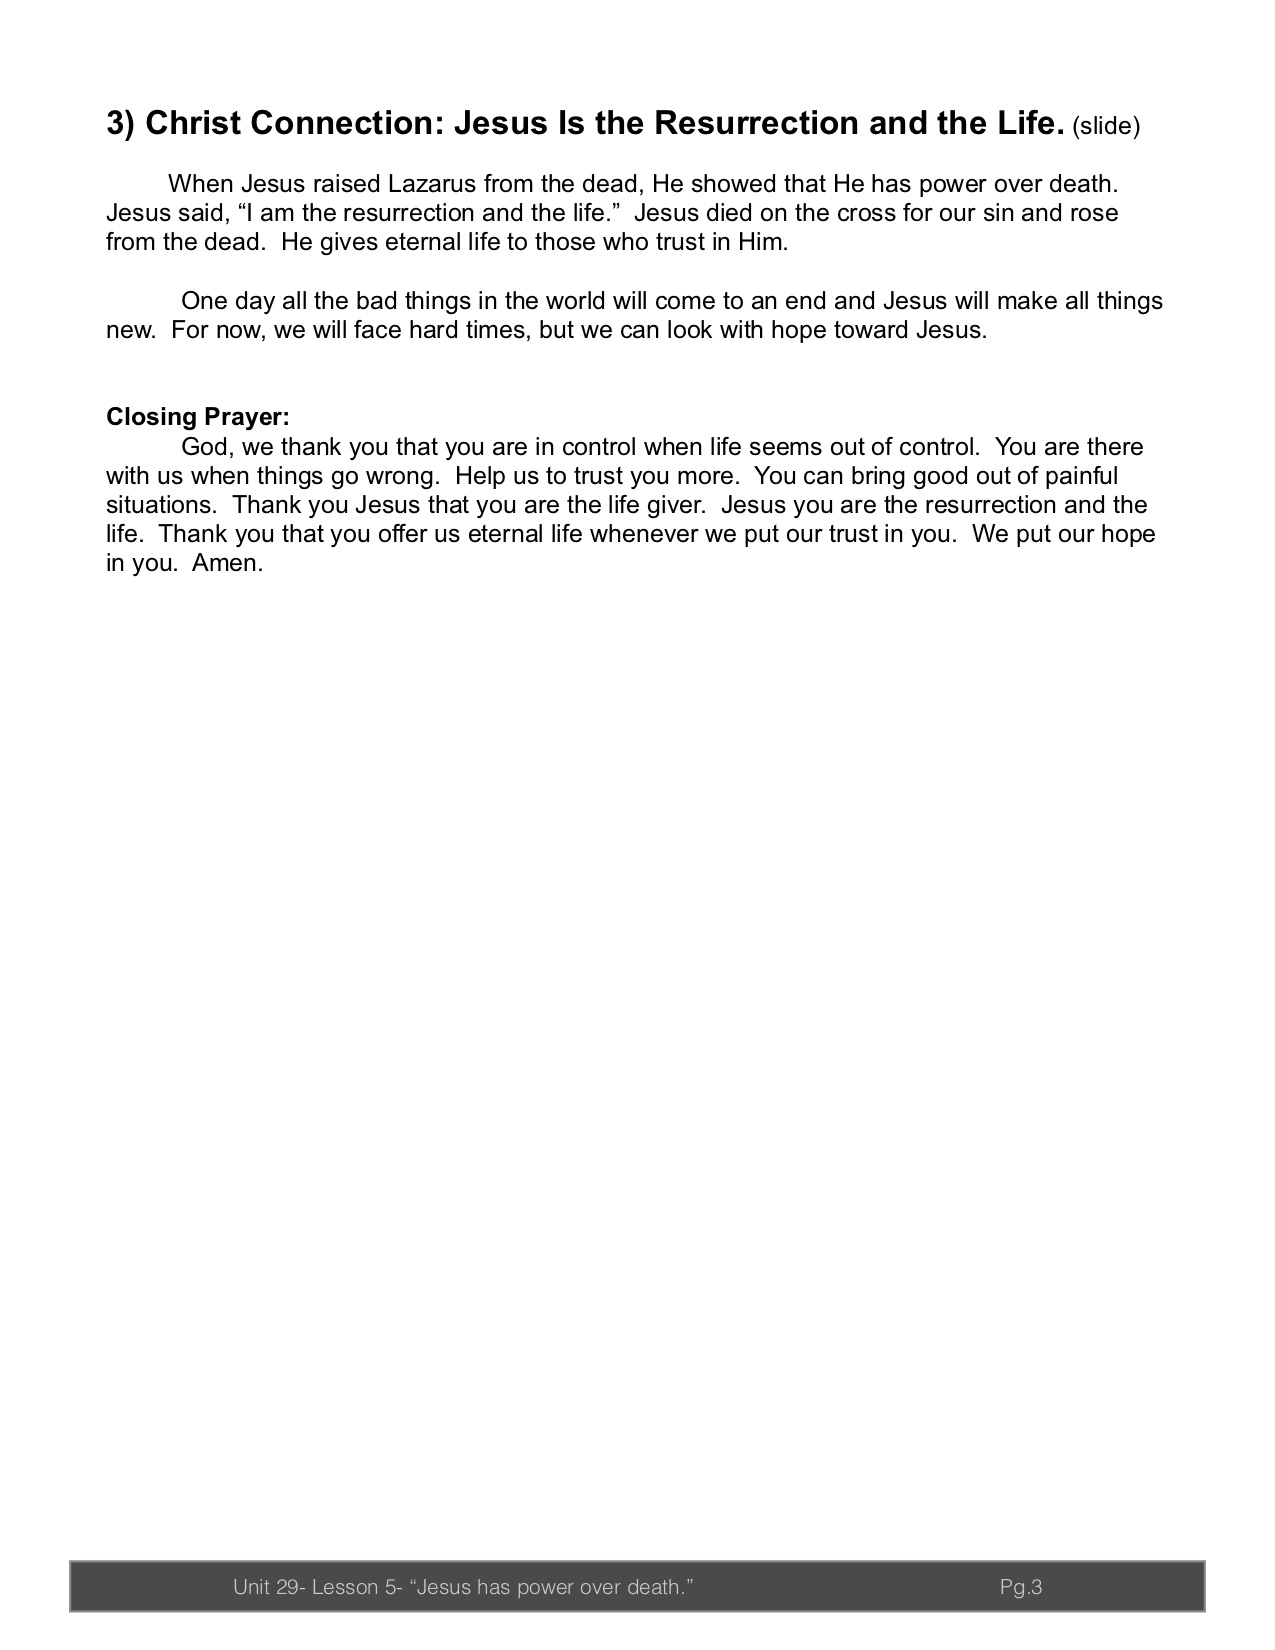 U29 L5 power over death pg 3